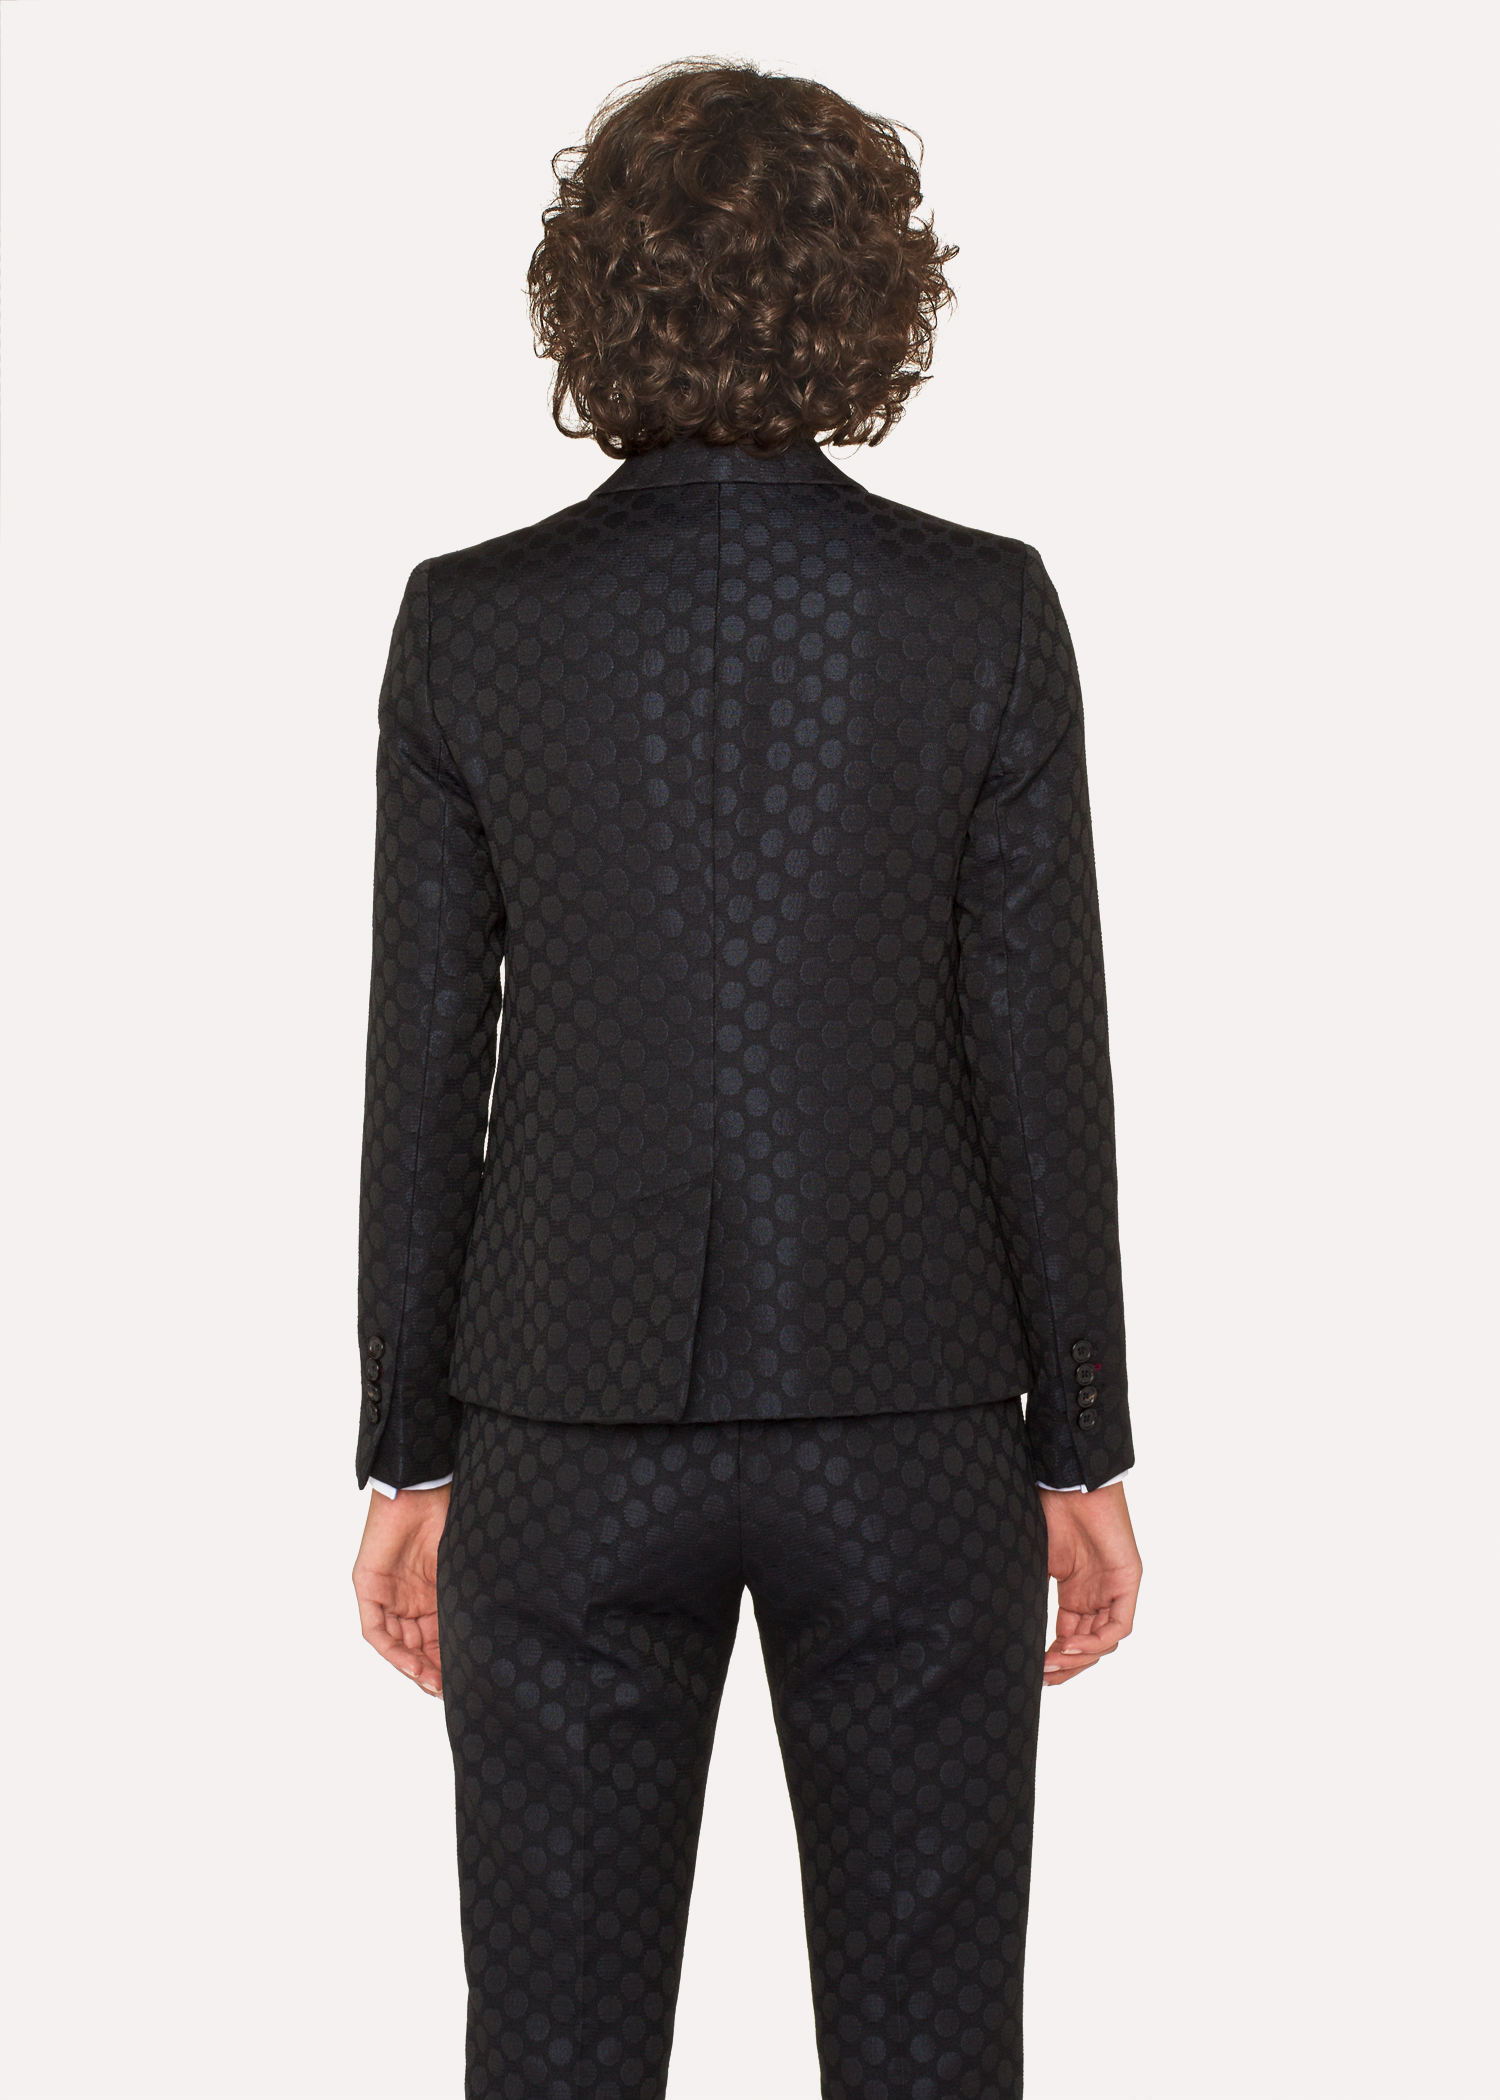 Women S Black Polka Dot Jacquard Double Breasted Suit Paul Smith Us